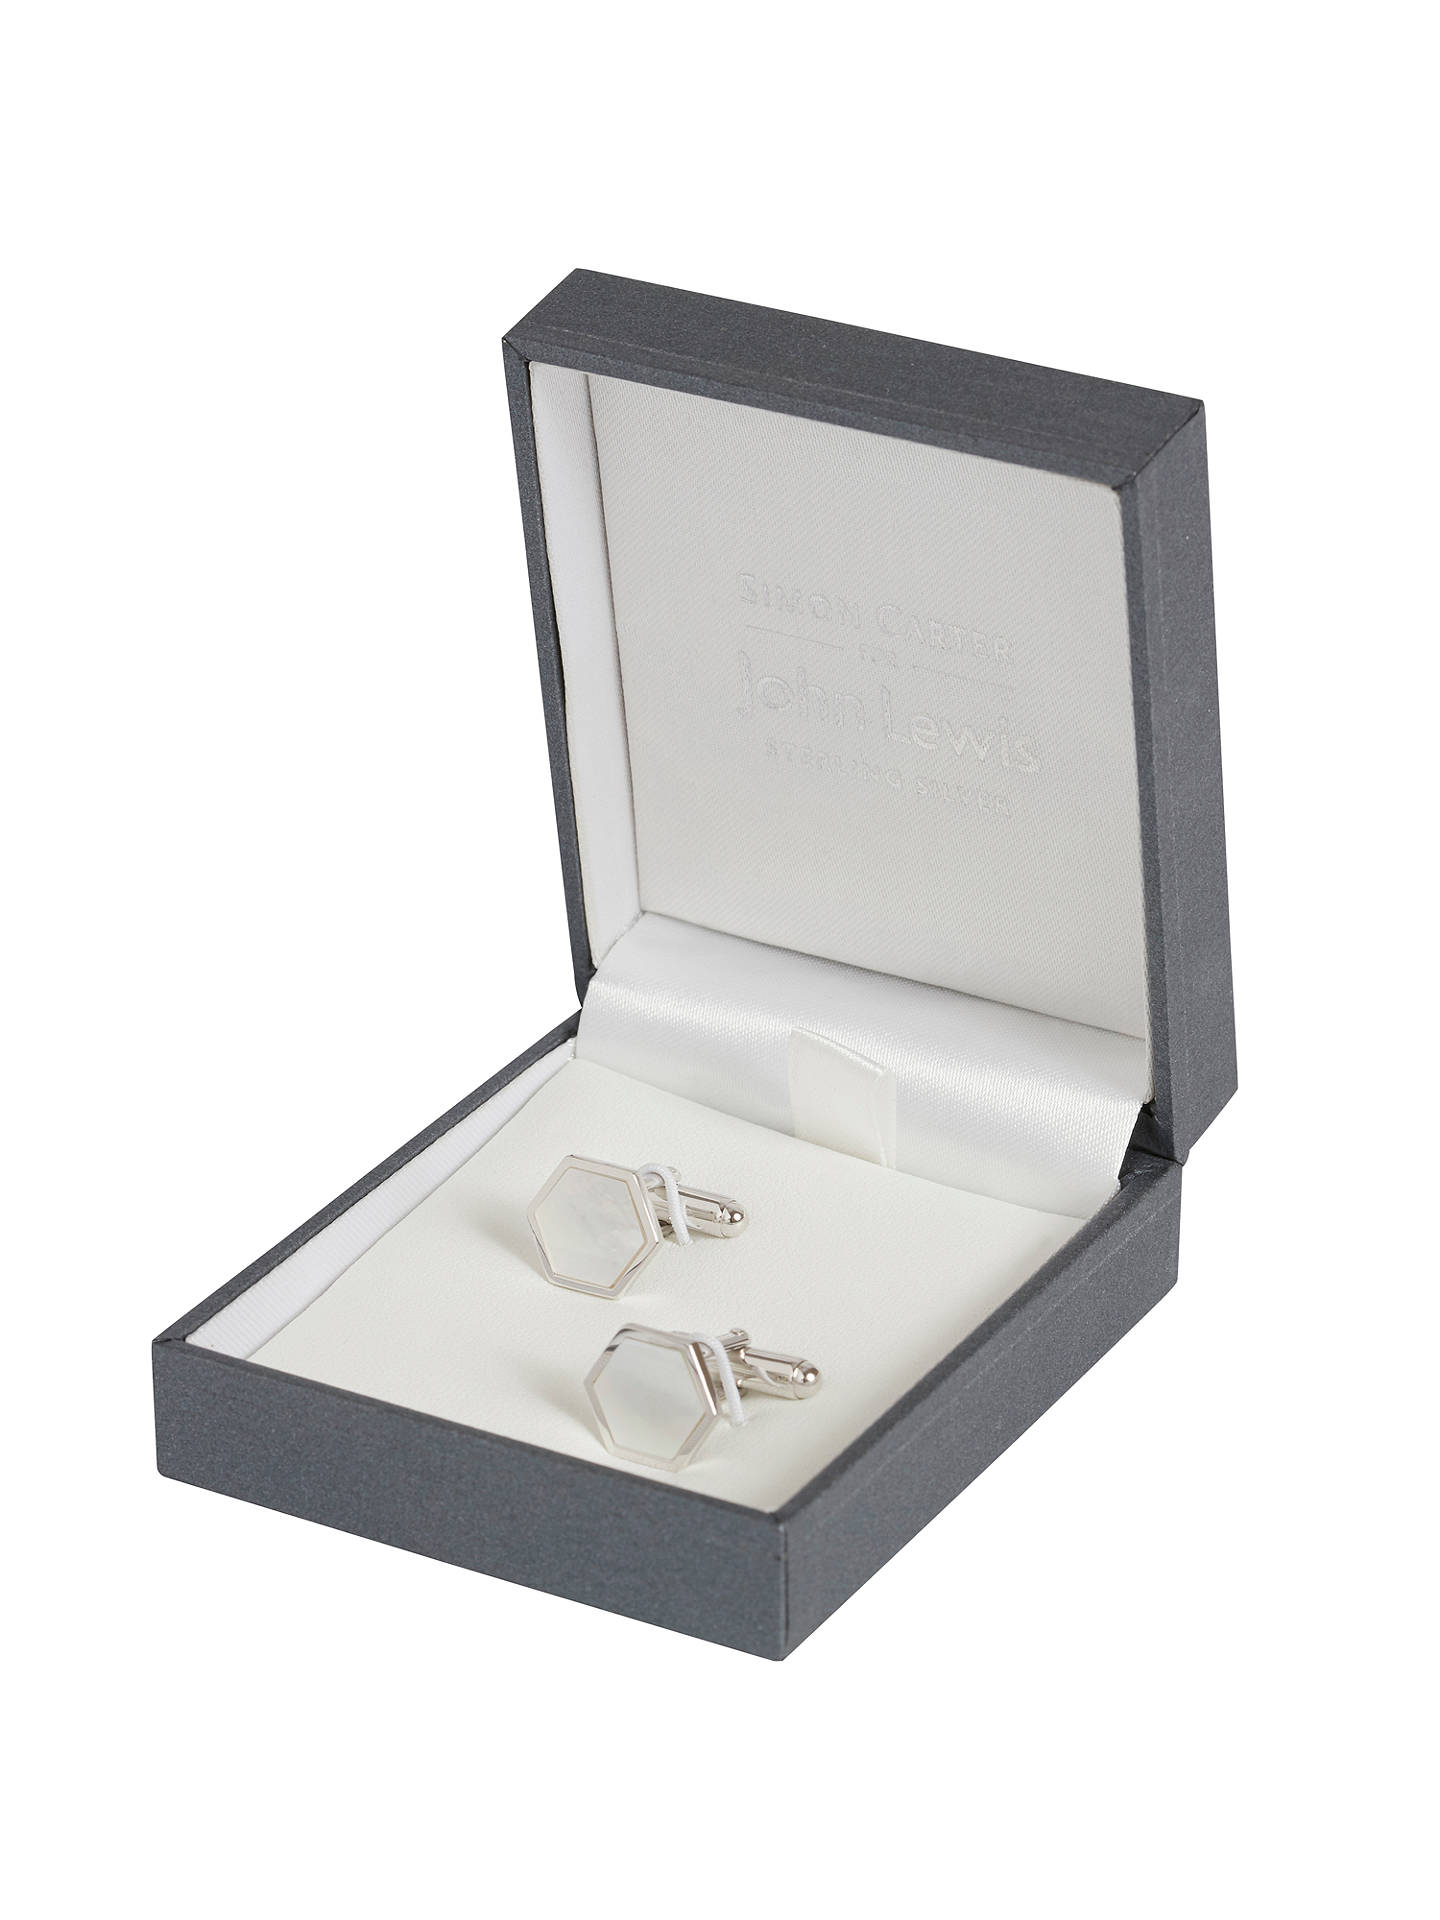 BuySimon Carter for John Lewis Hexagonal Sterling Silver Mother of Pearl Cufflinks, Silver Online at johnlewis.com